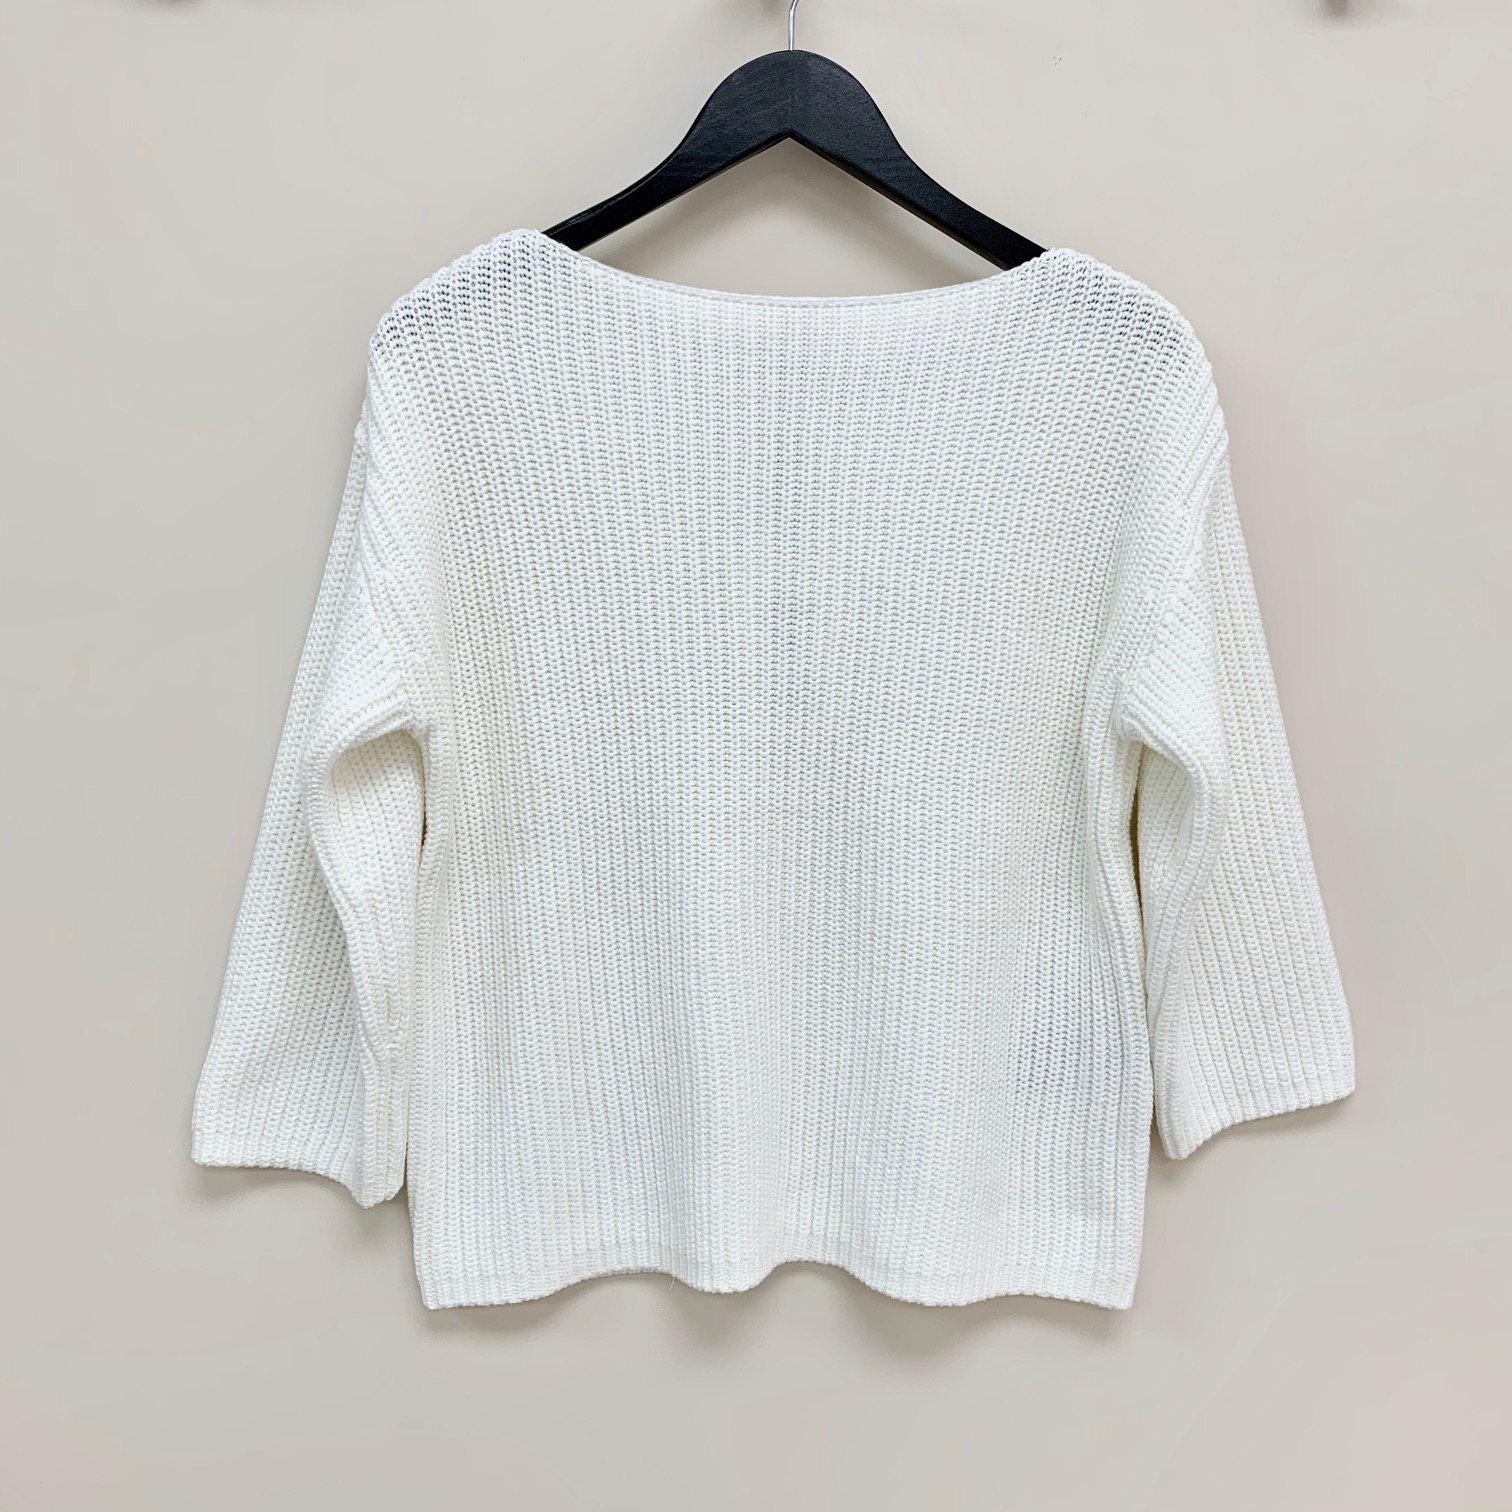 White boat neck knit